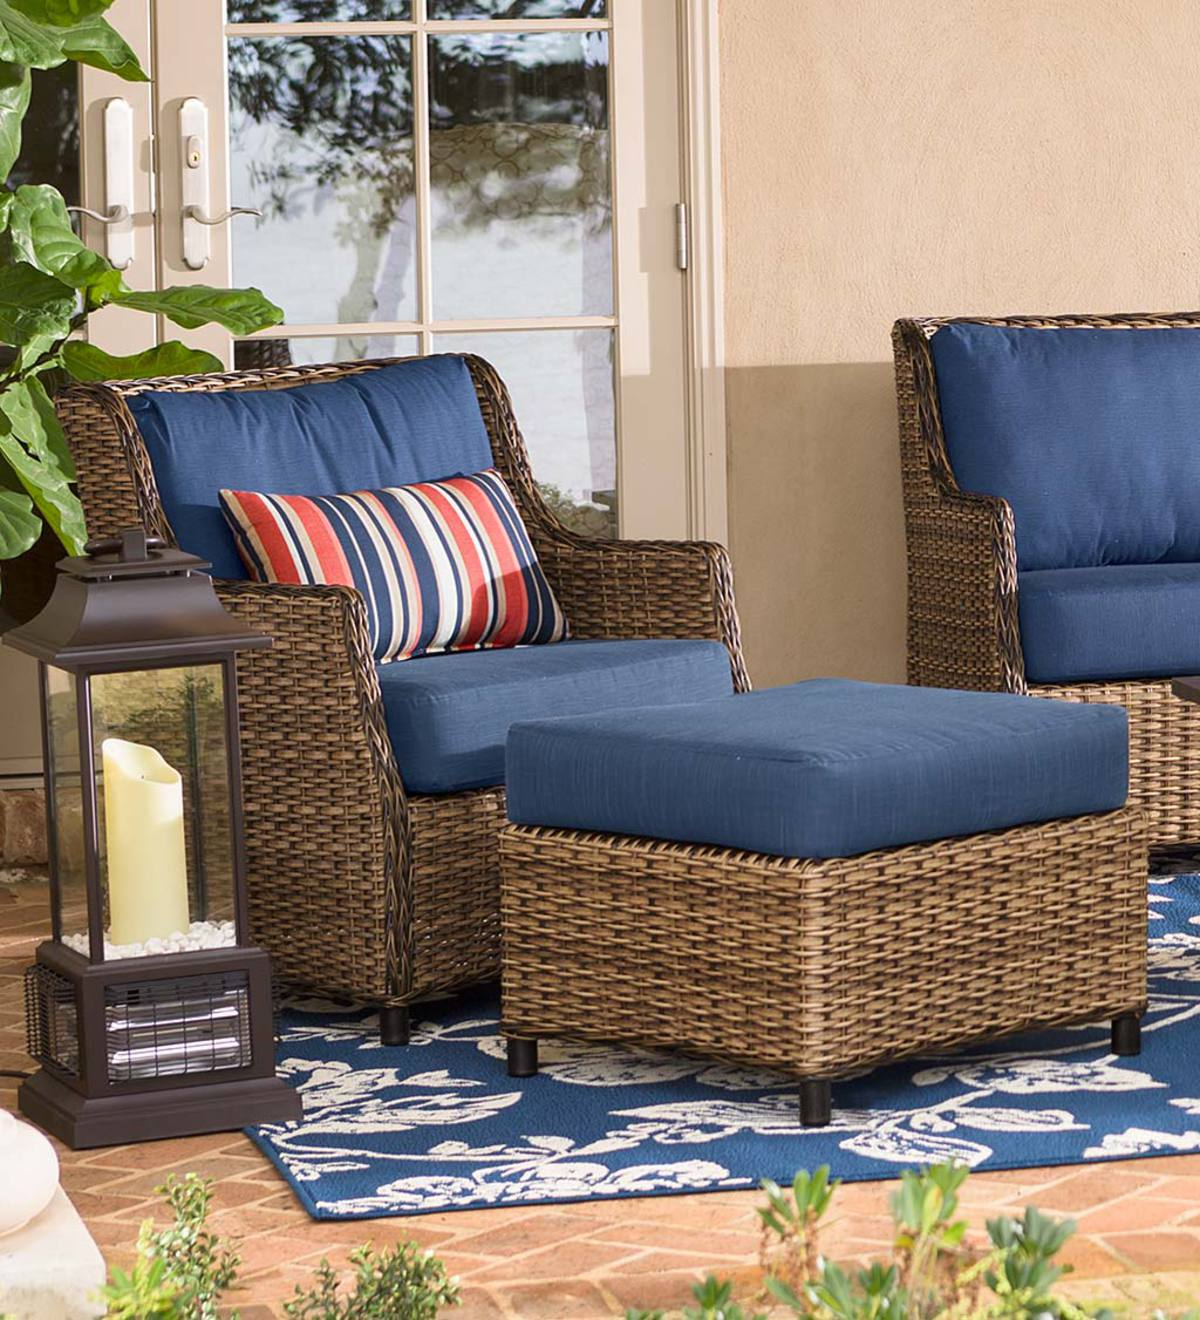 Highland Wicker Outdoor Deep Seating Chair With Ottoman - Coral